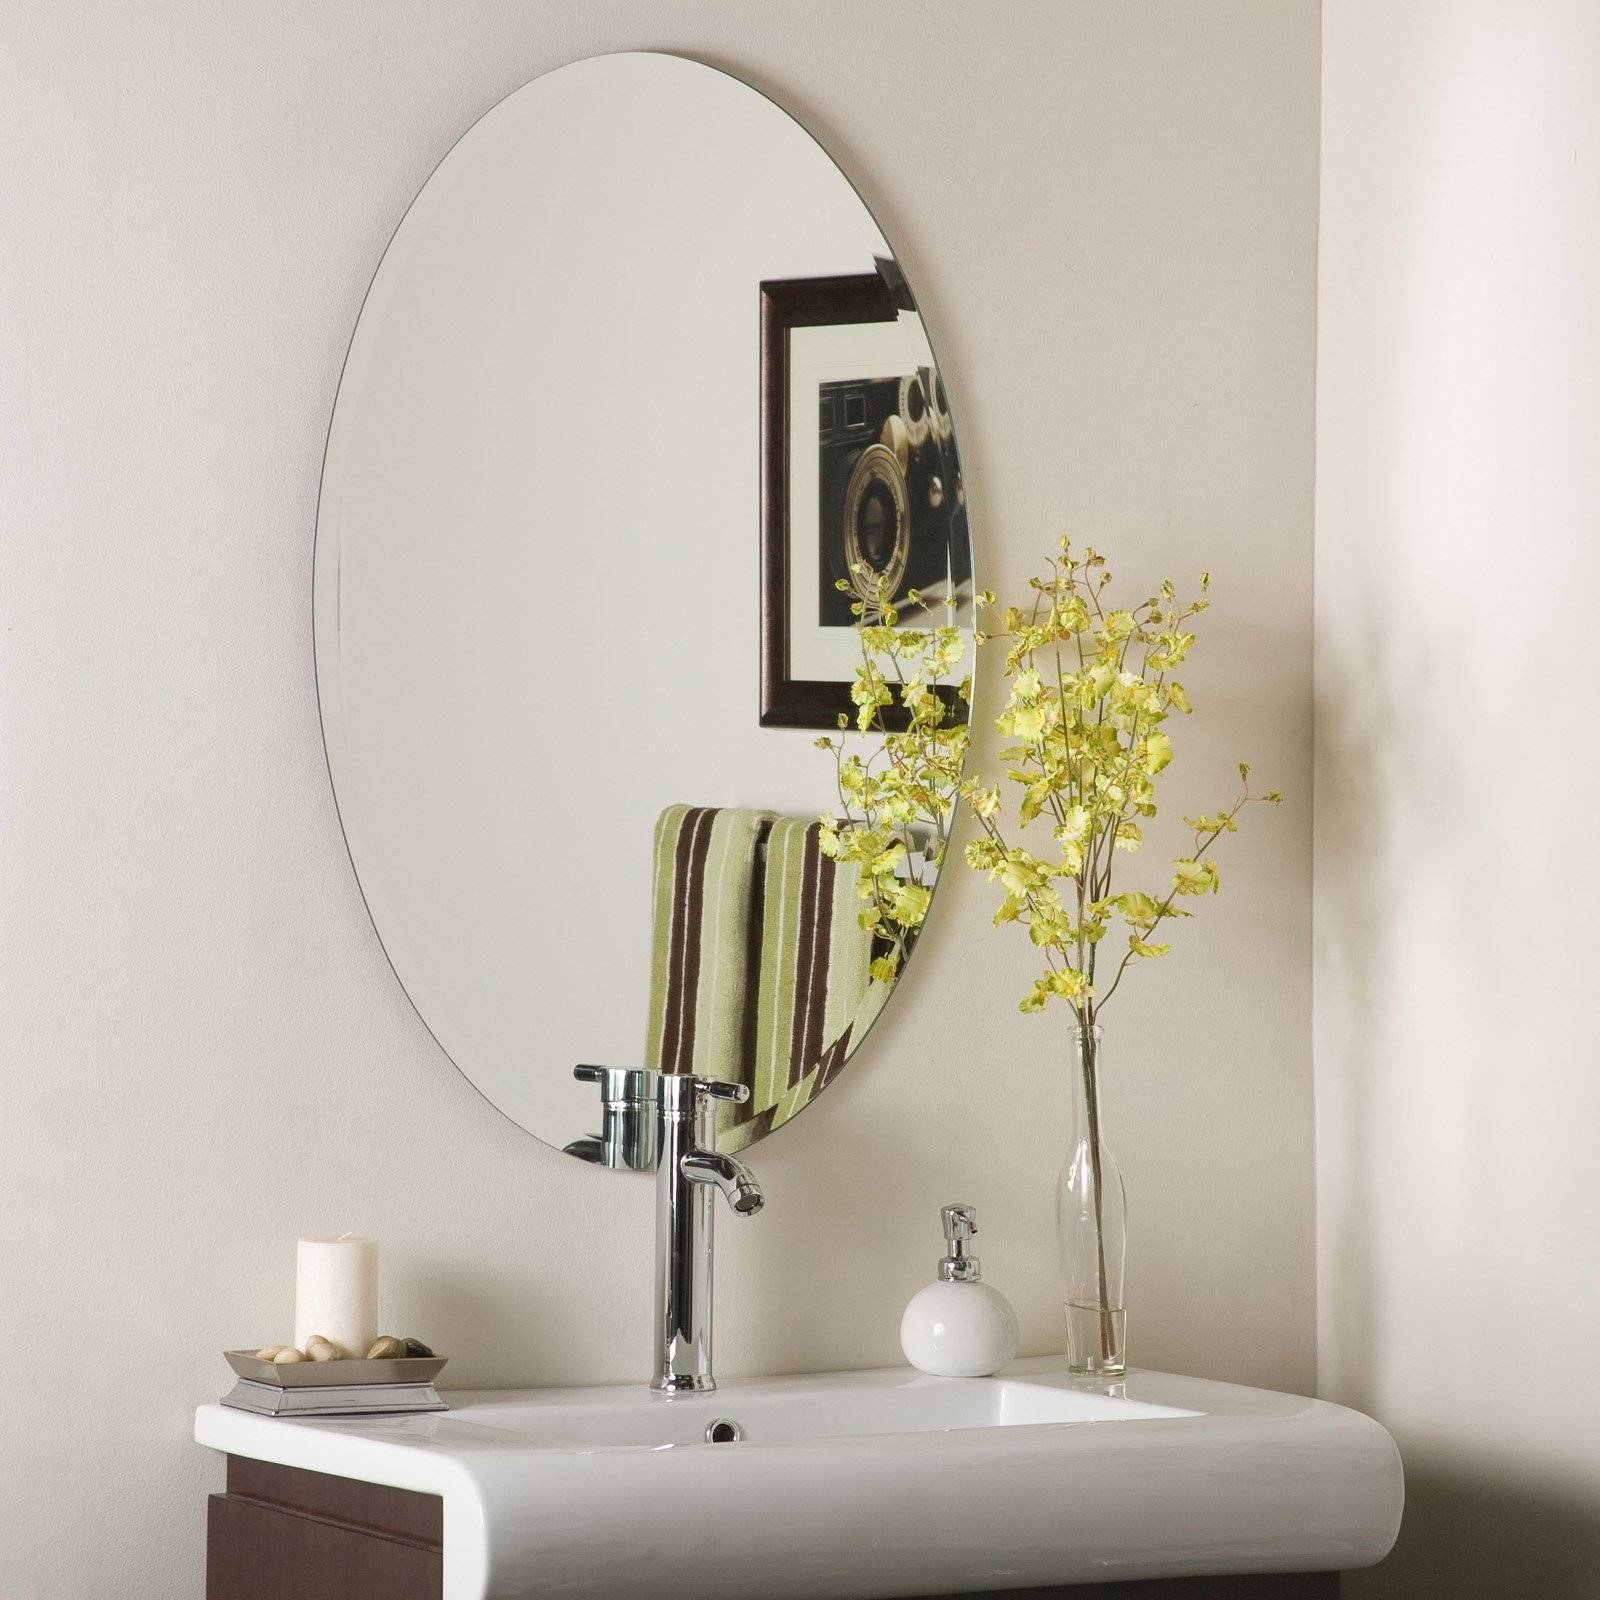 Uttermost Frameless Oval Beveled Vanity Mirror | Hayneedle Intended For Beveled Edge Oval Mirrors (Photo 22 of 25)